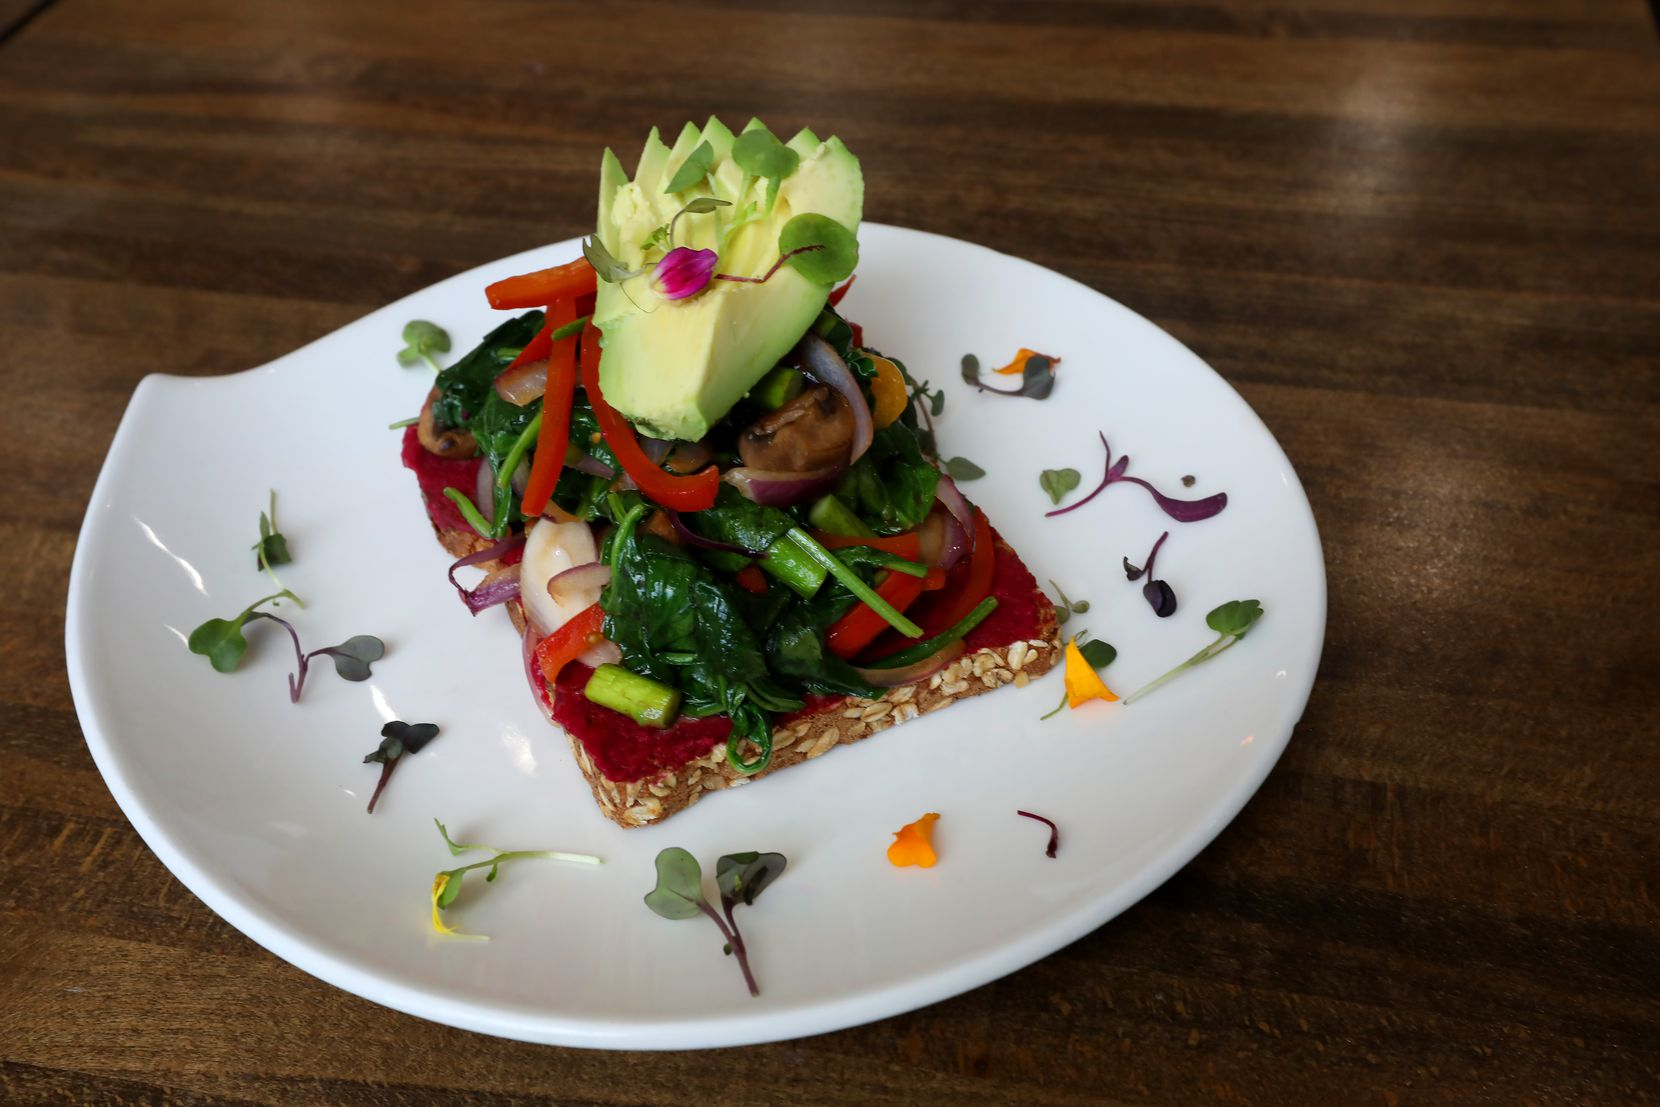 The veggie toast at Nest Cafe includes avocado, pan-seared mushrooms, spinach, asparagus, tomato and beet hummus.